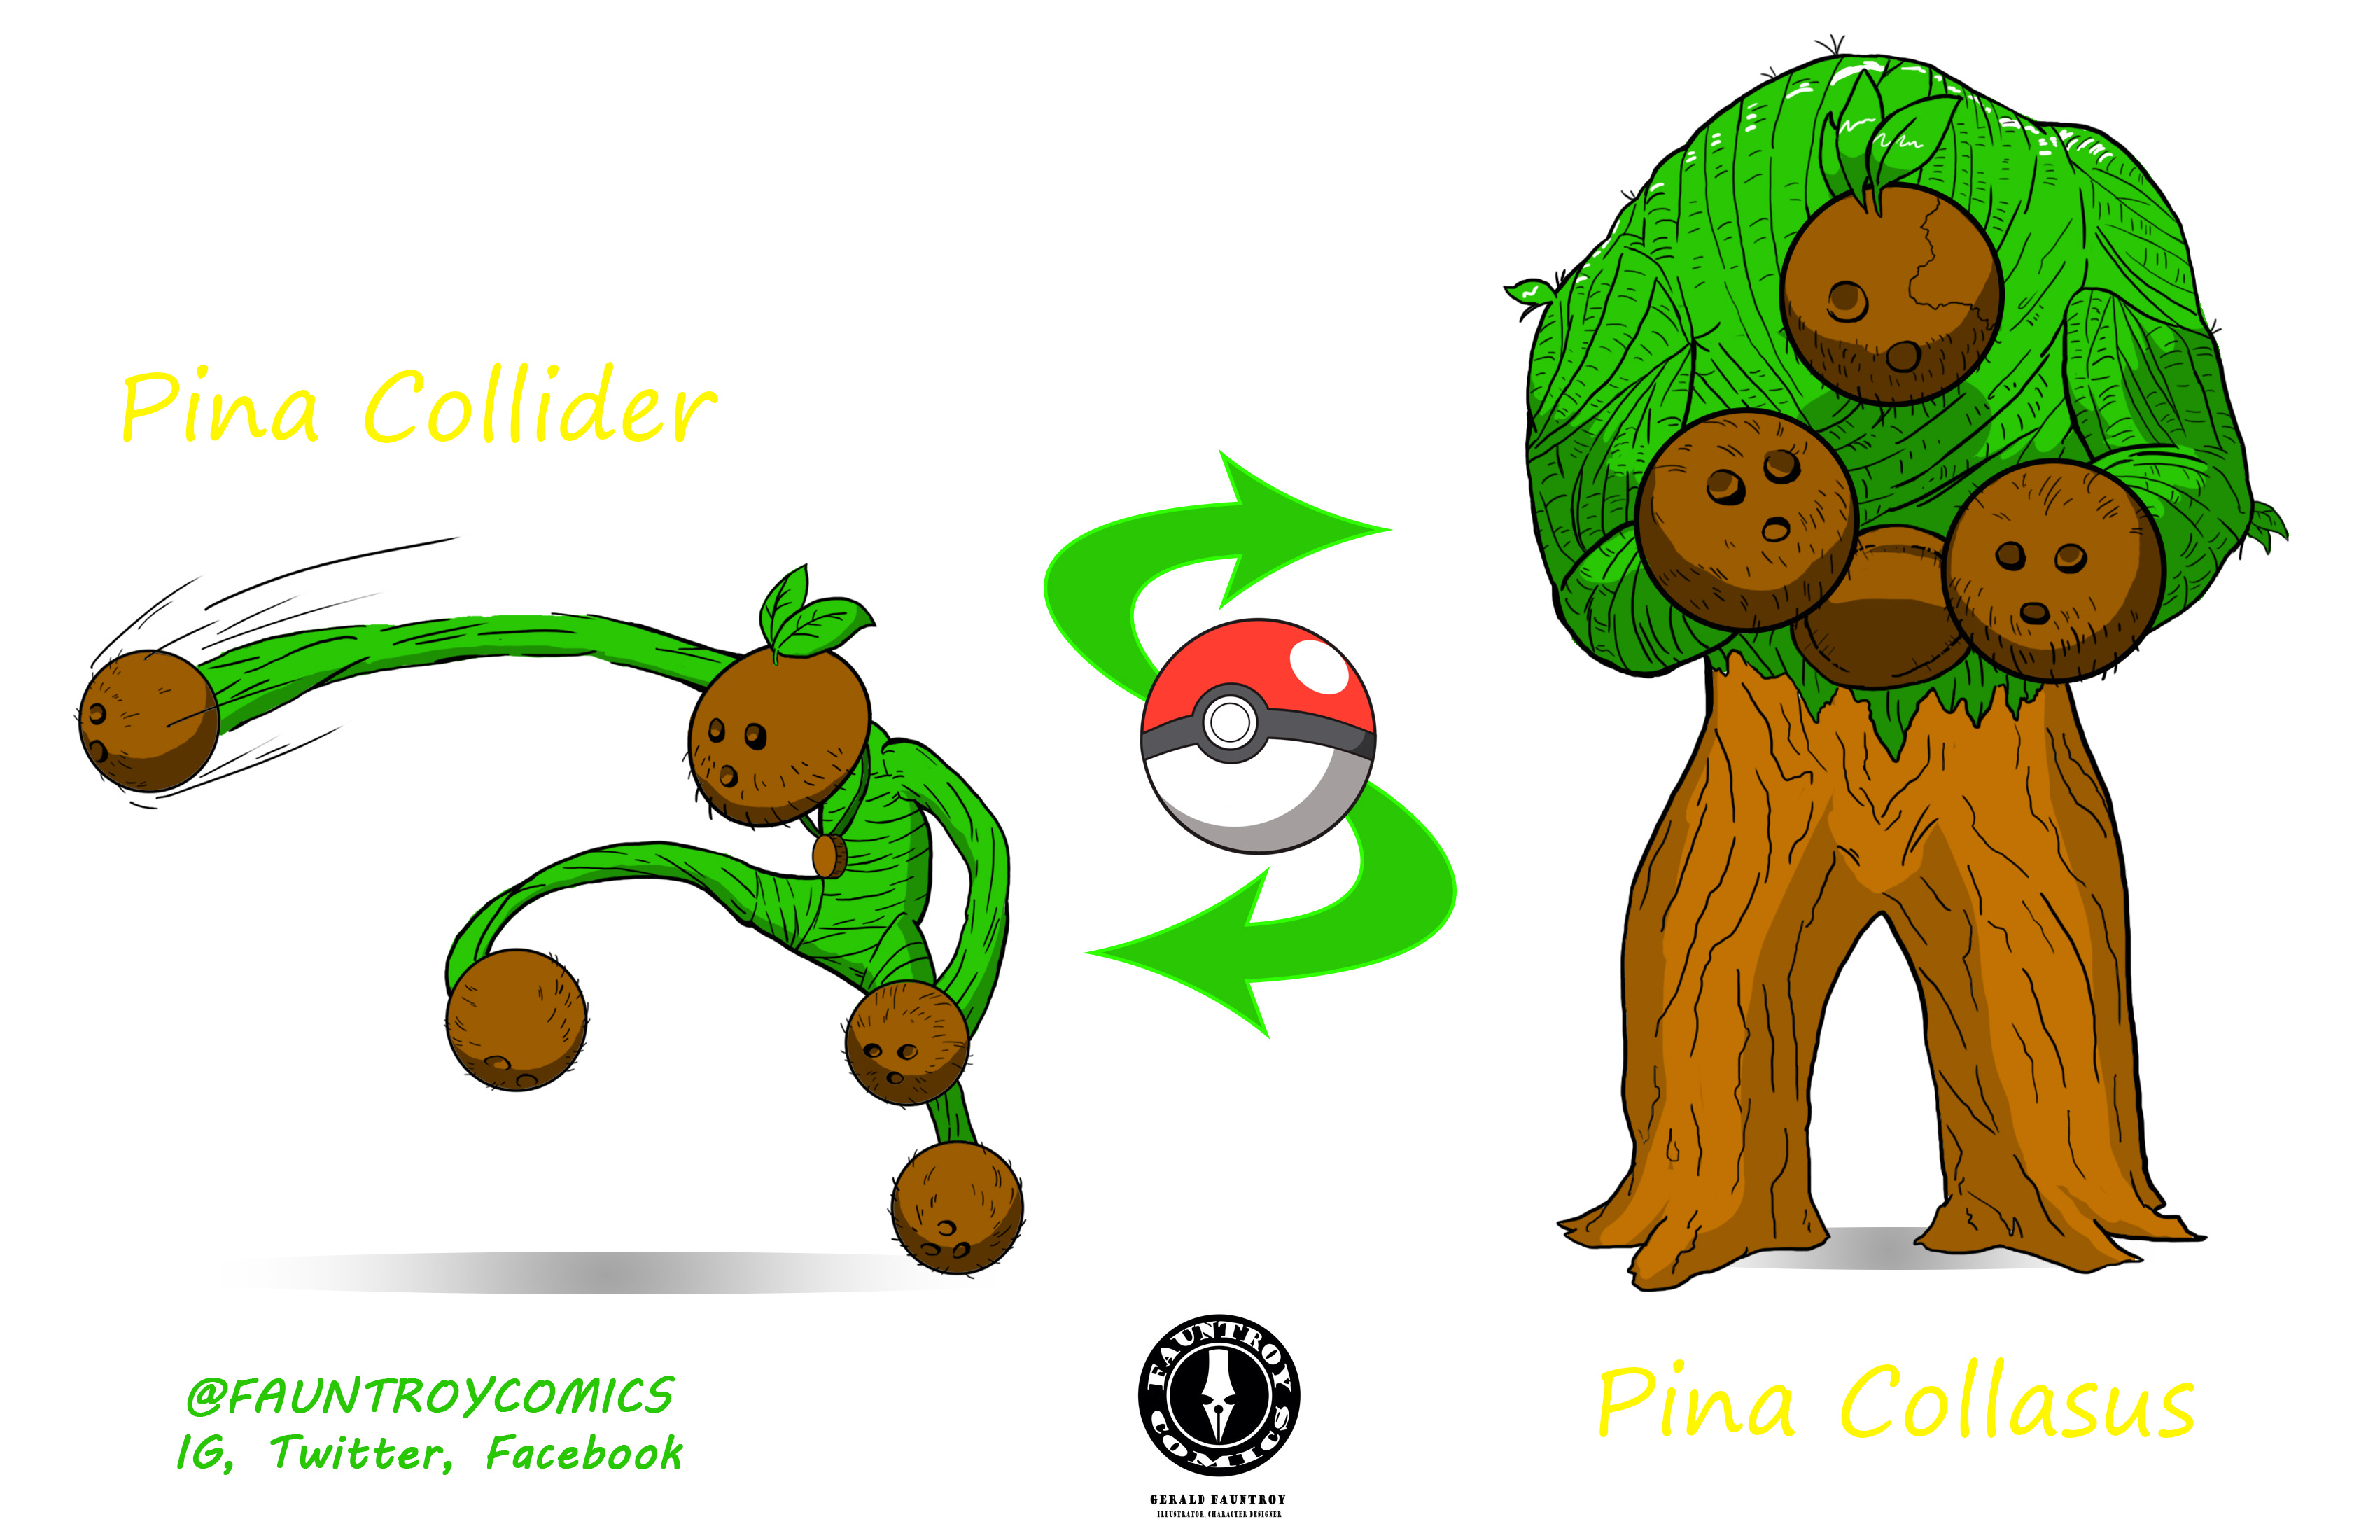 pinacollider